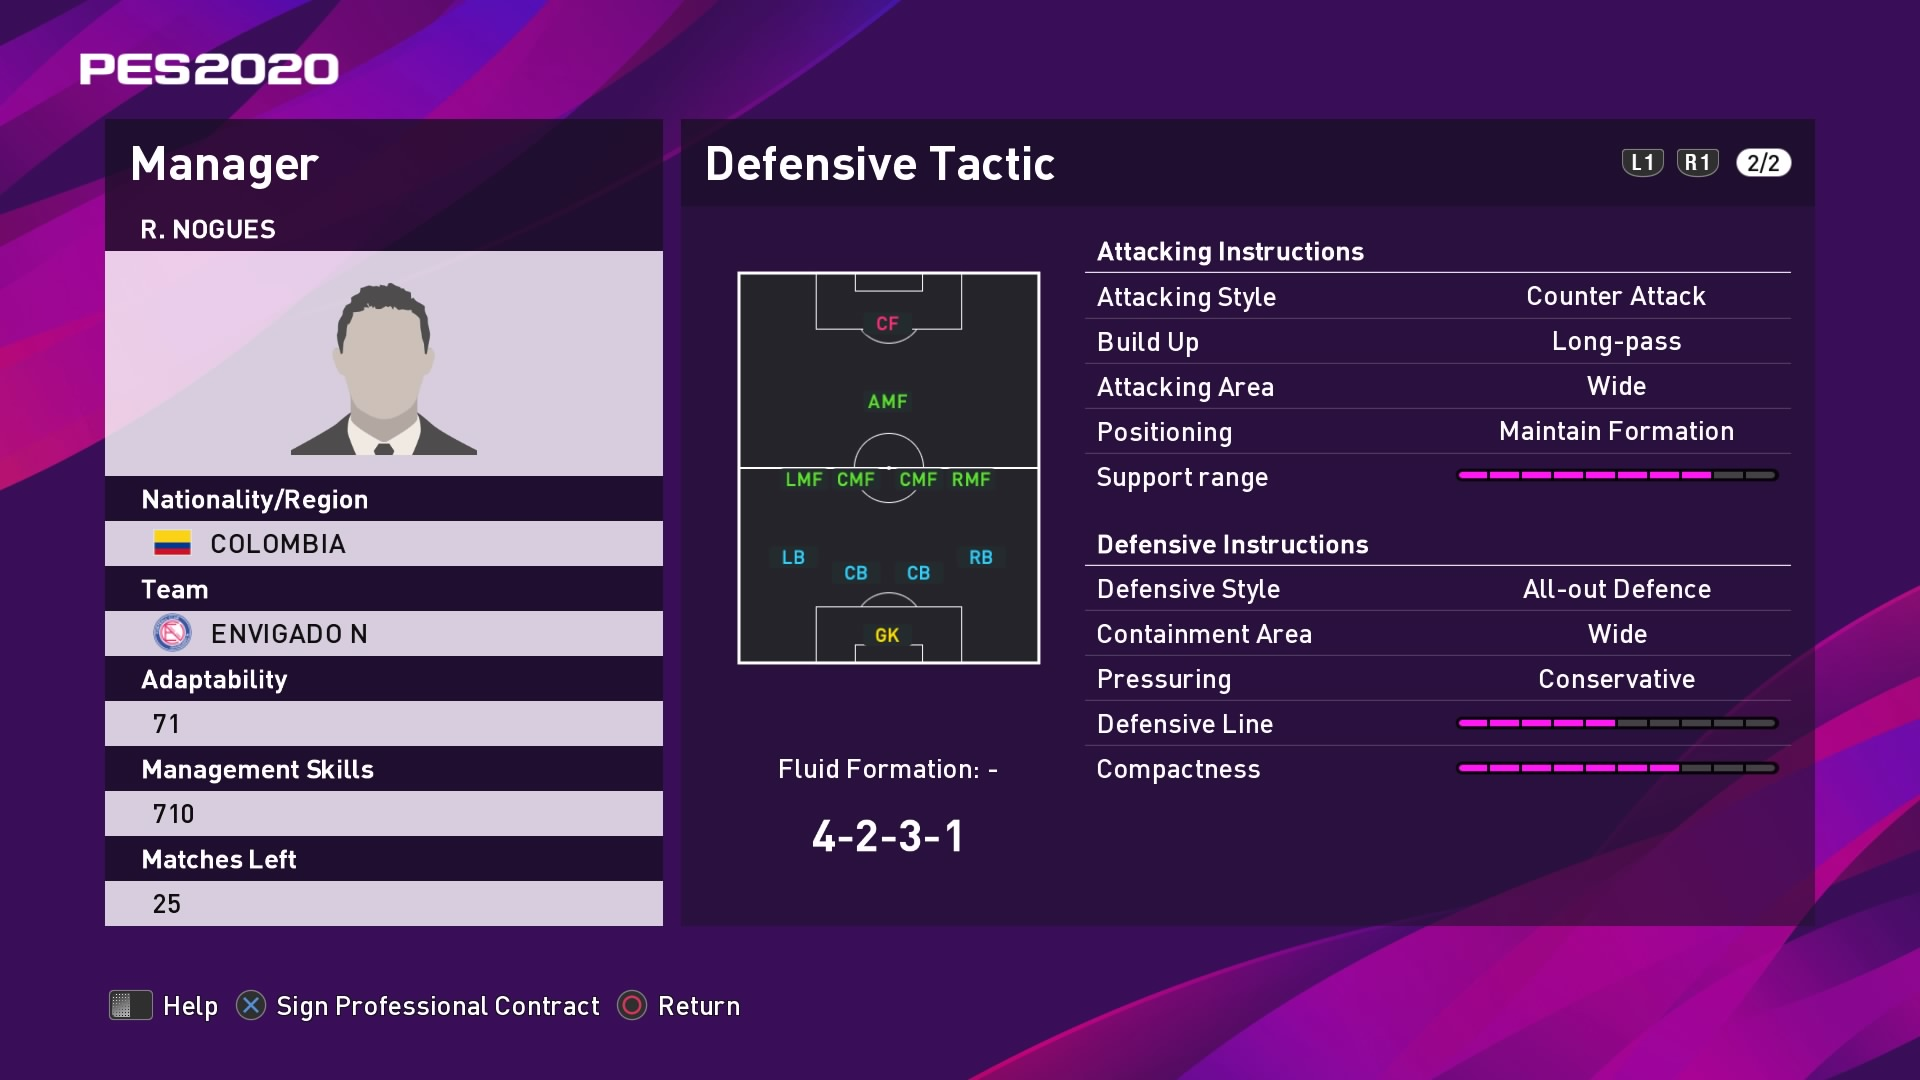 R. Nogues (José Arastey) Defensive Tactic in PES 2020 myClub